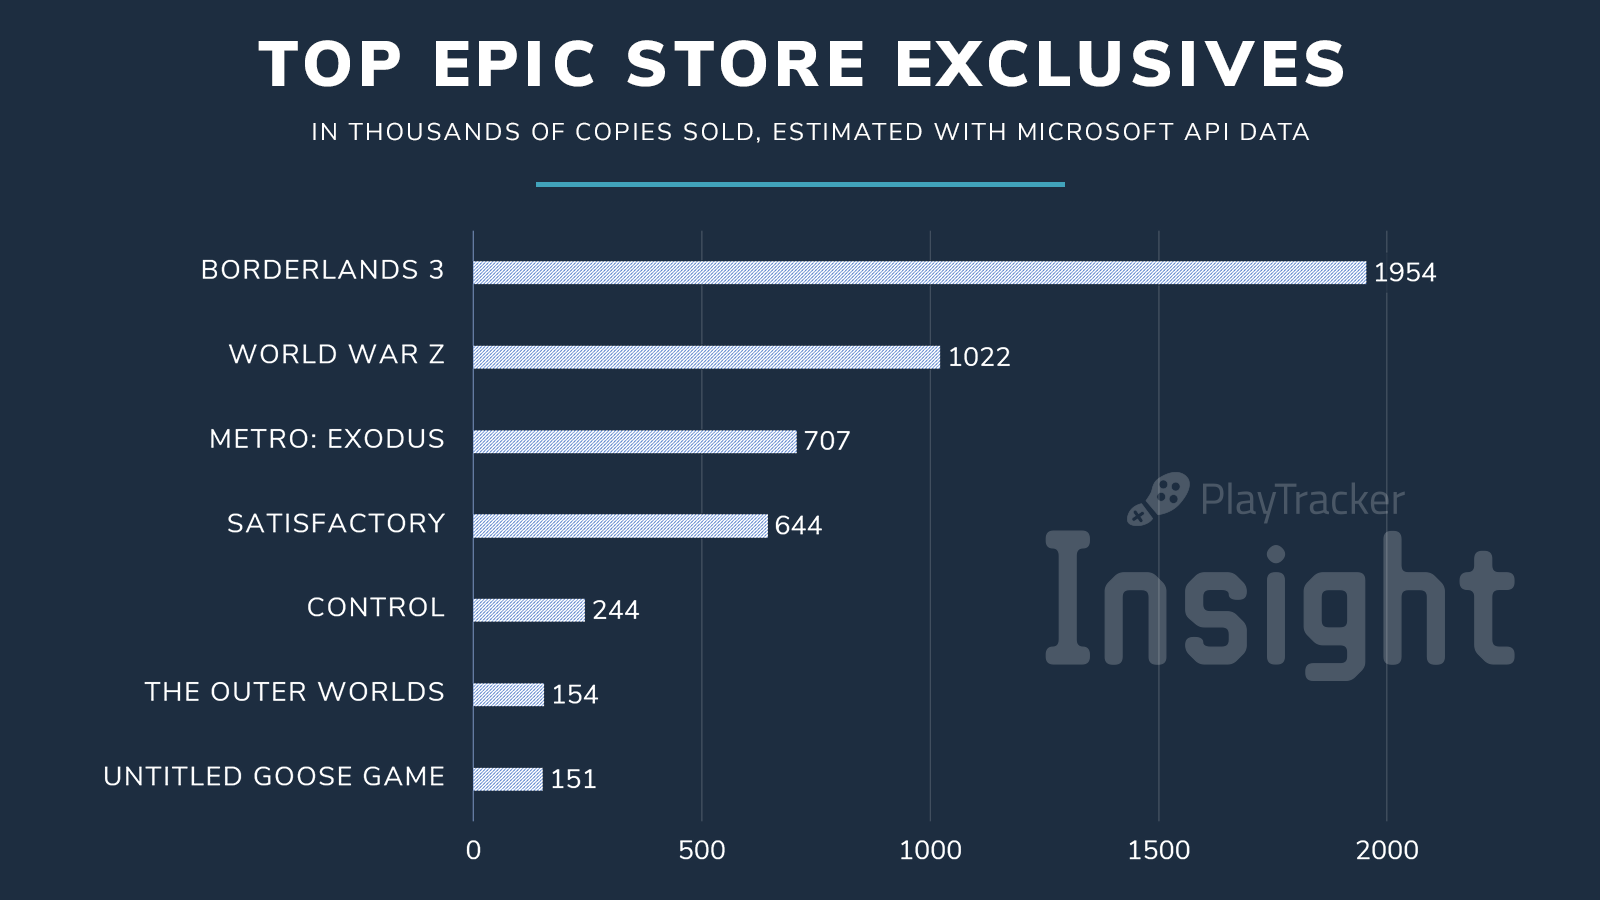 graph of top epic store exclusives